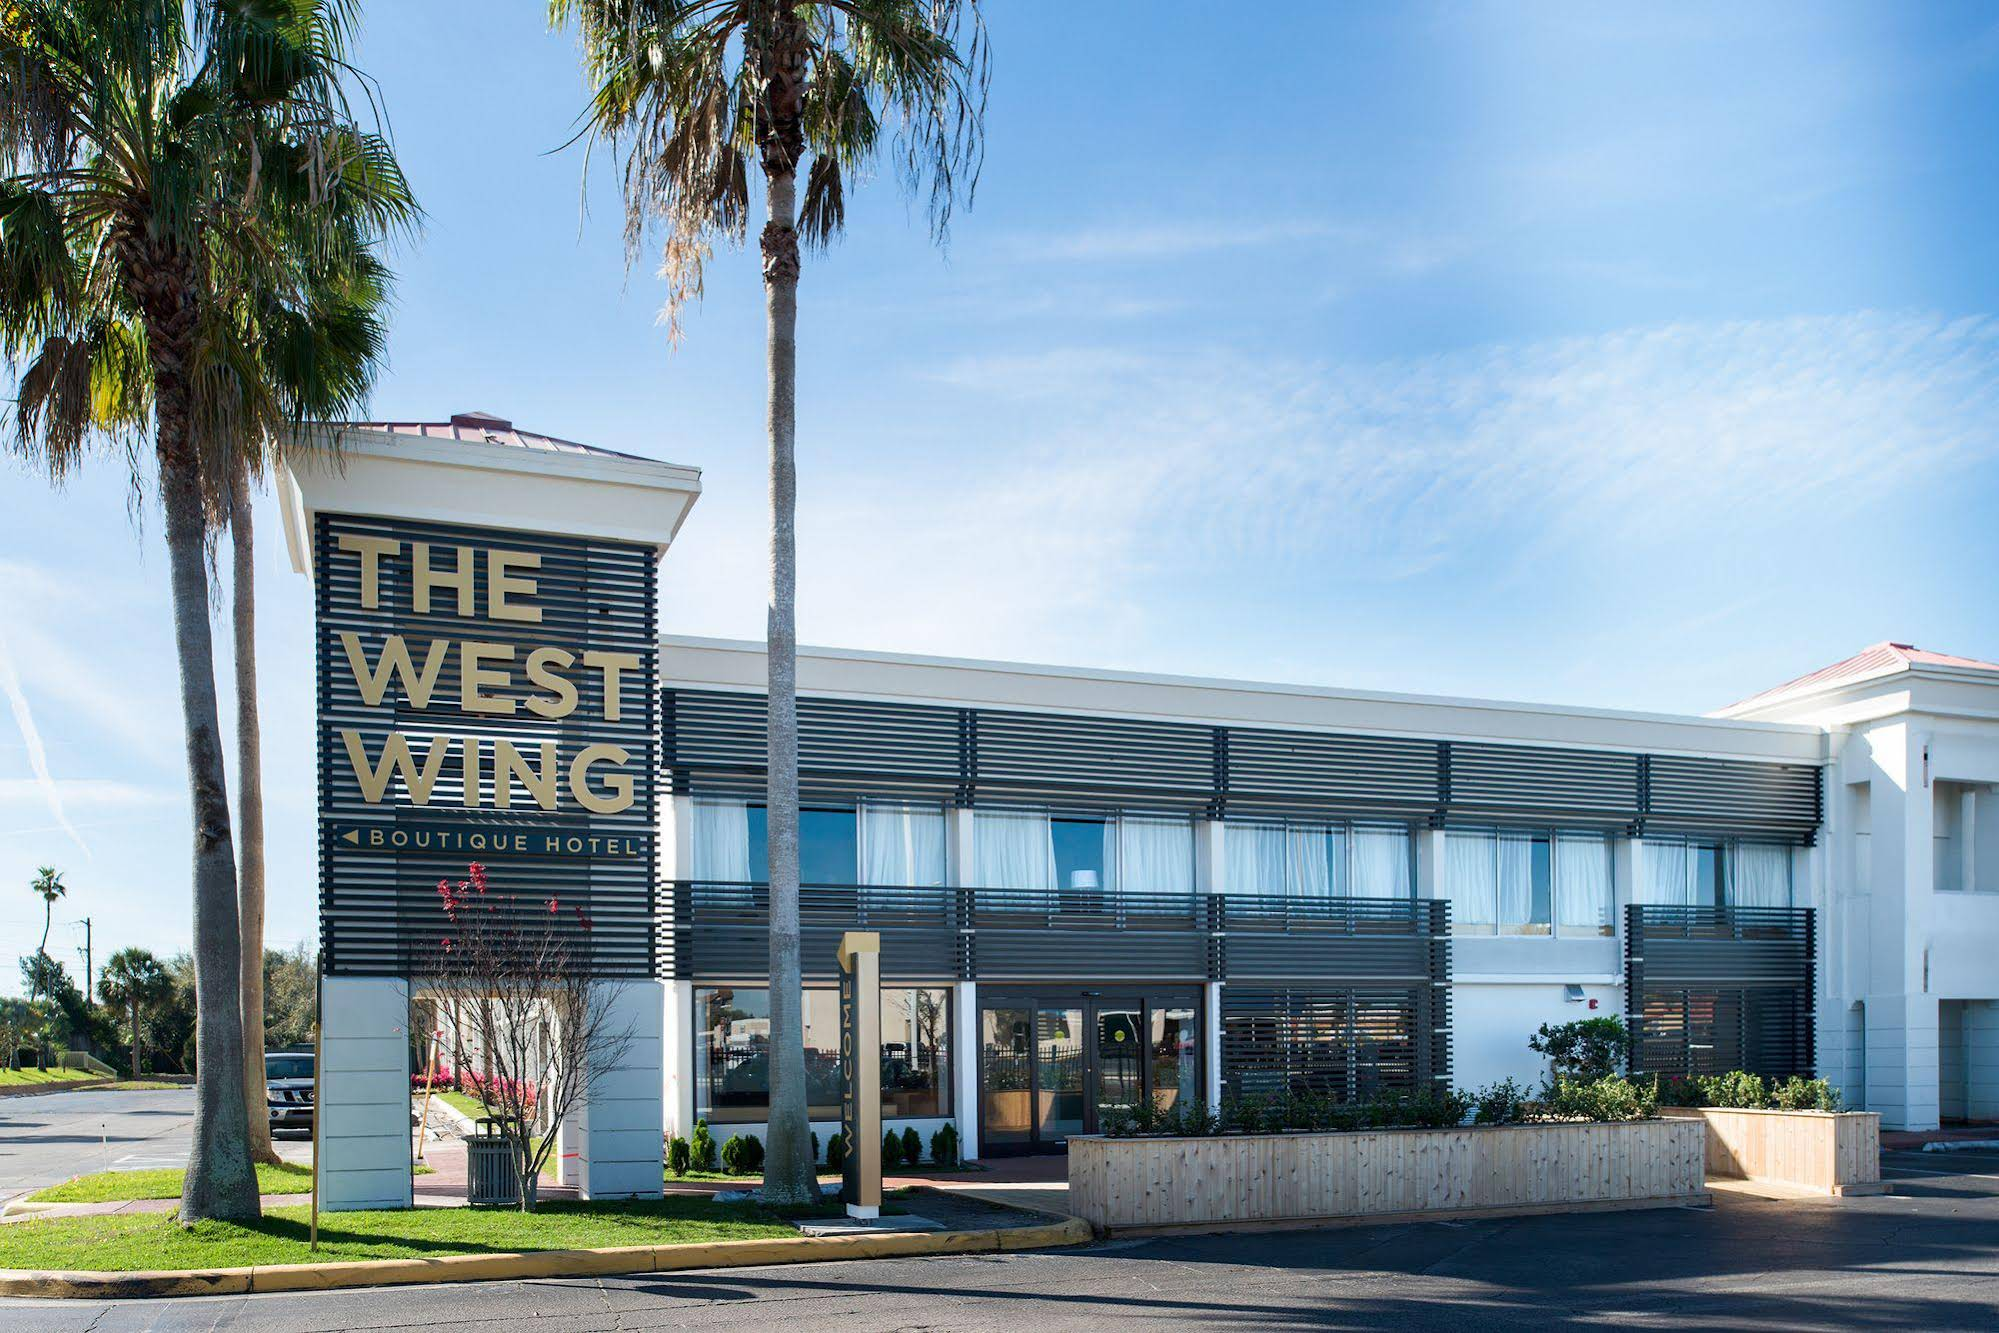 The West Wing Boutique